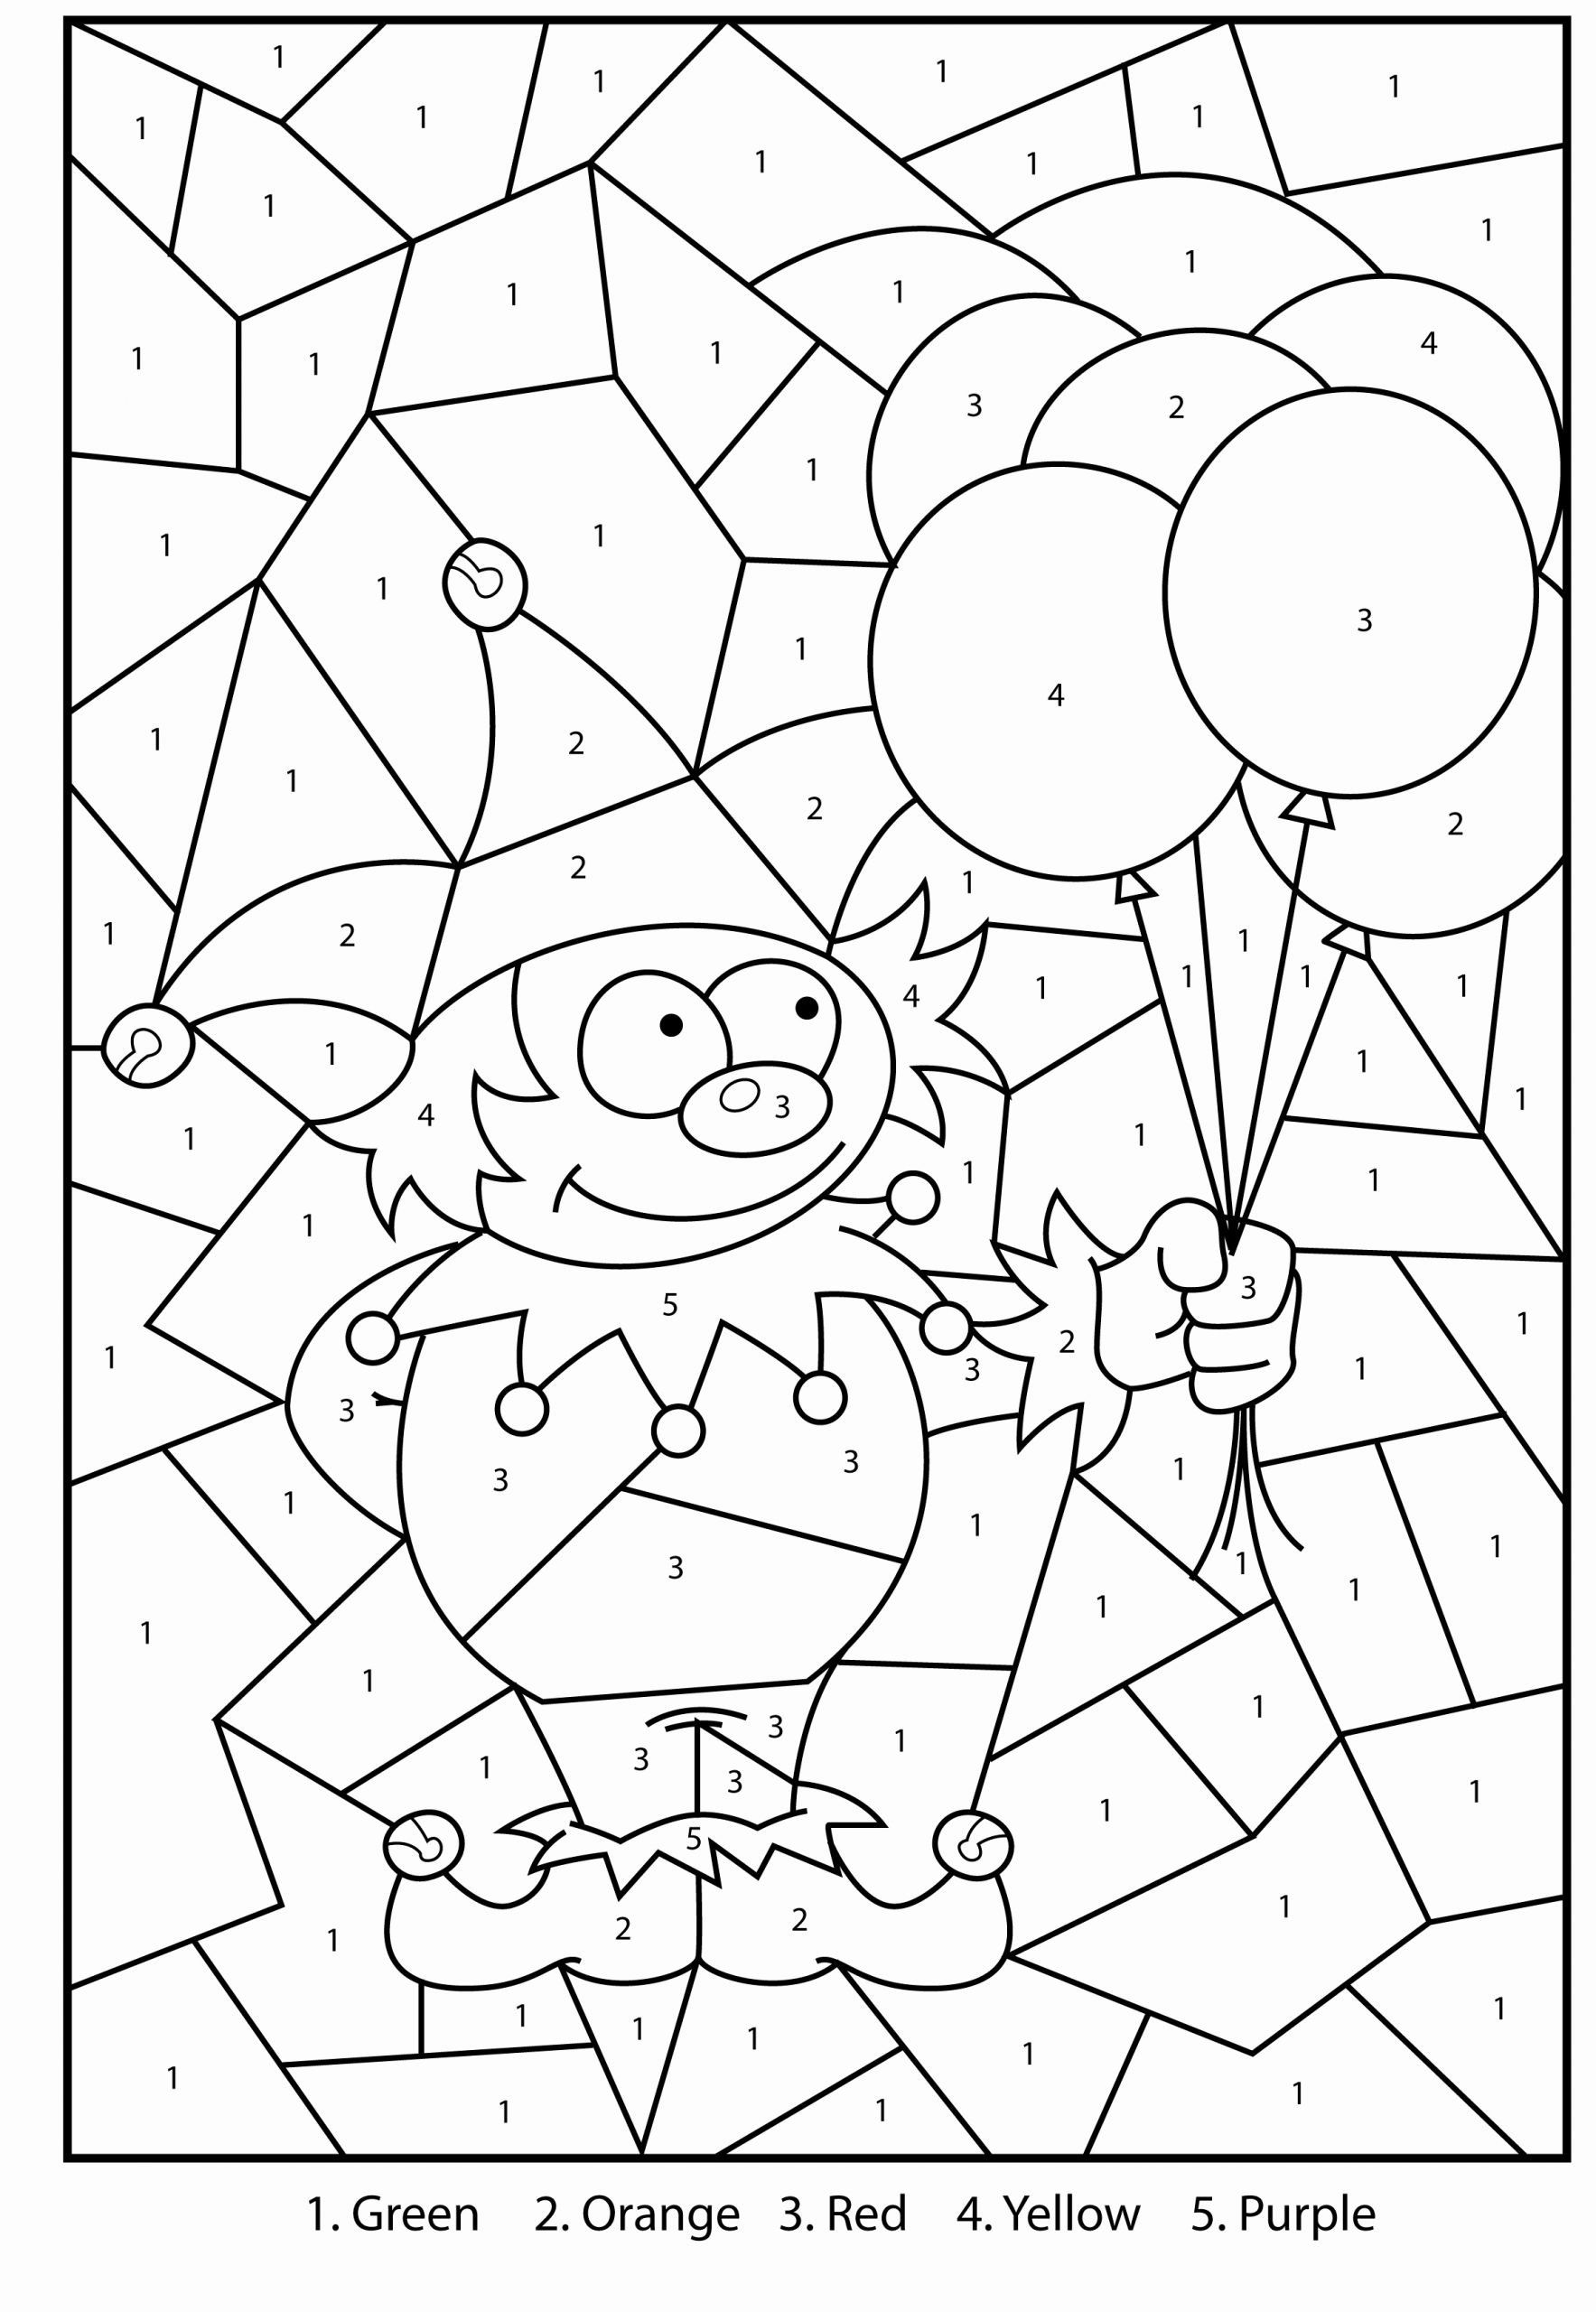 Pin On Supercoloring Pages Books Ideas For Kids And Adult